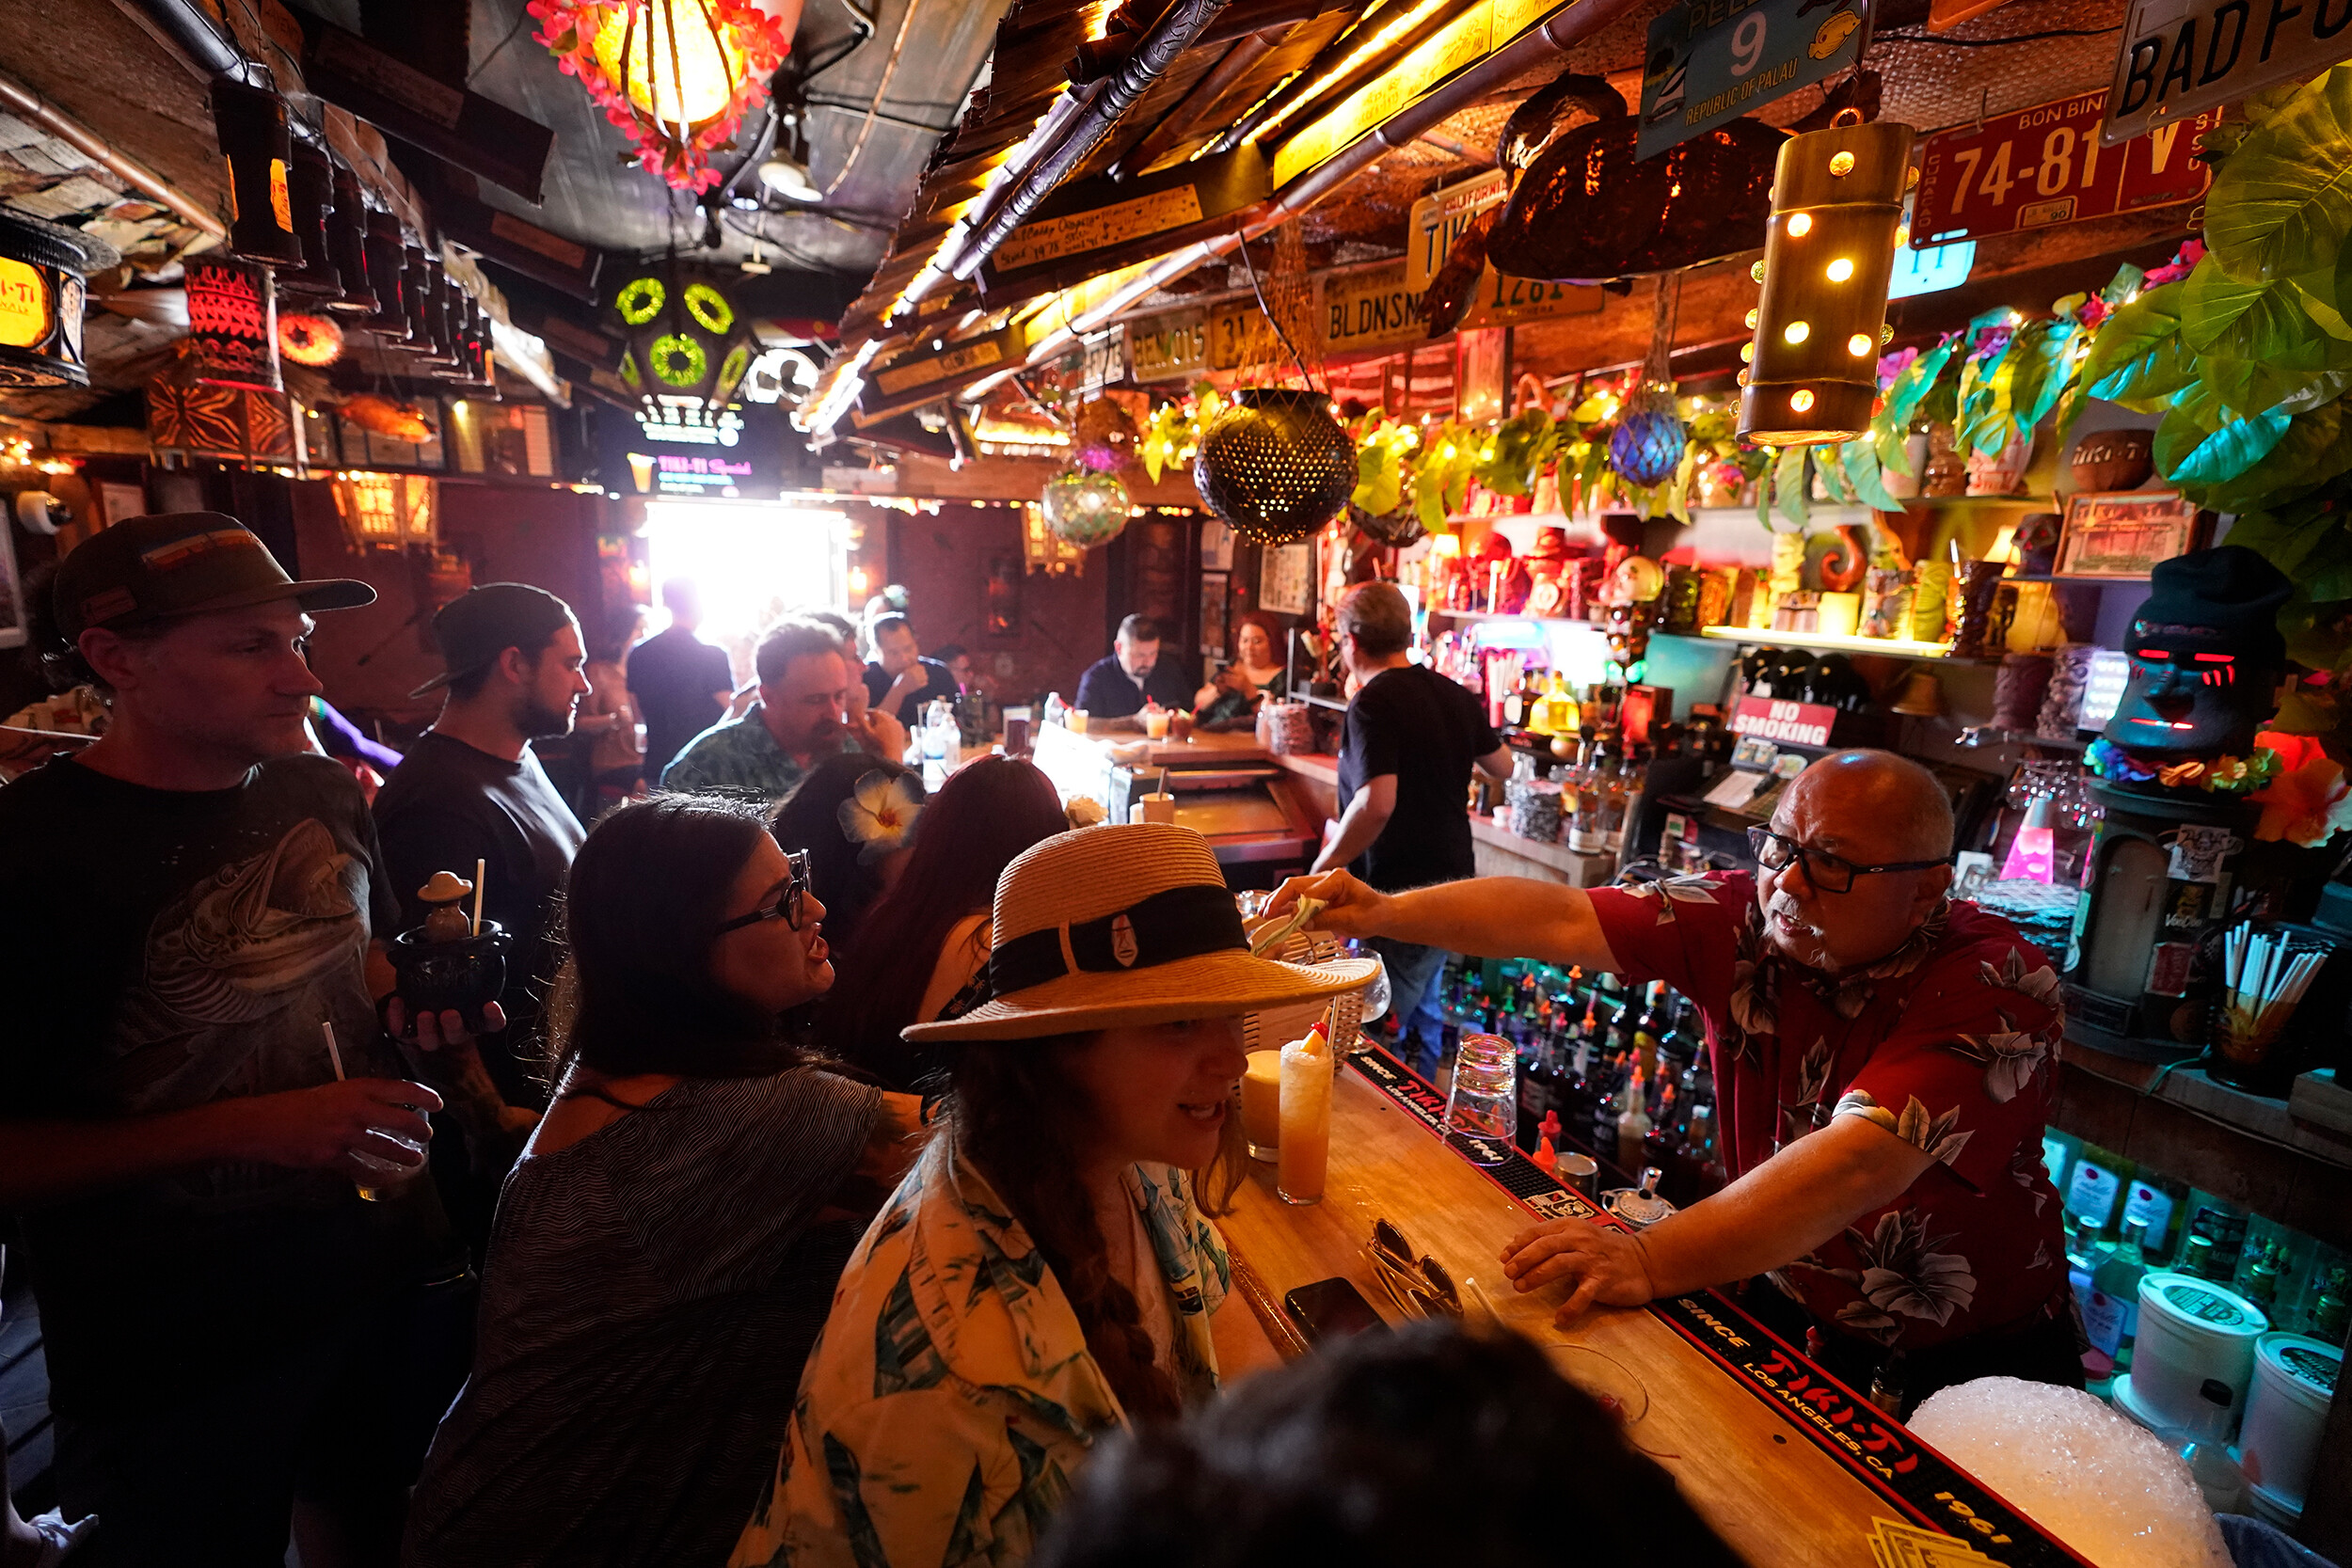 <i>Damian Dovarganes/AP/FILE</i><br/>Los Angeles County will require customers and employees in indoor bars